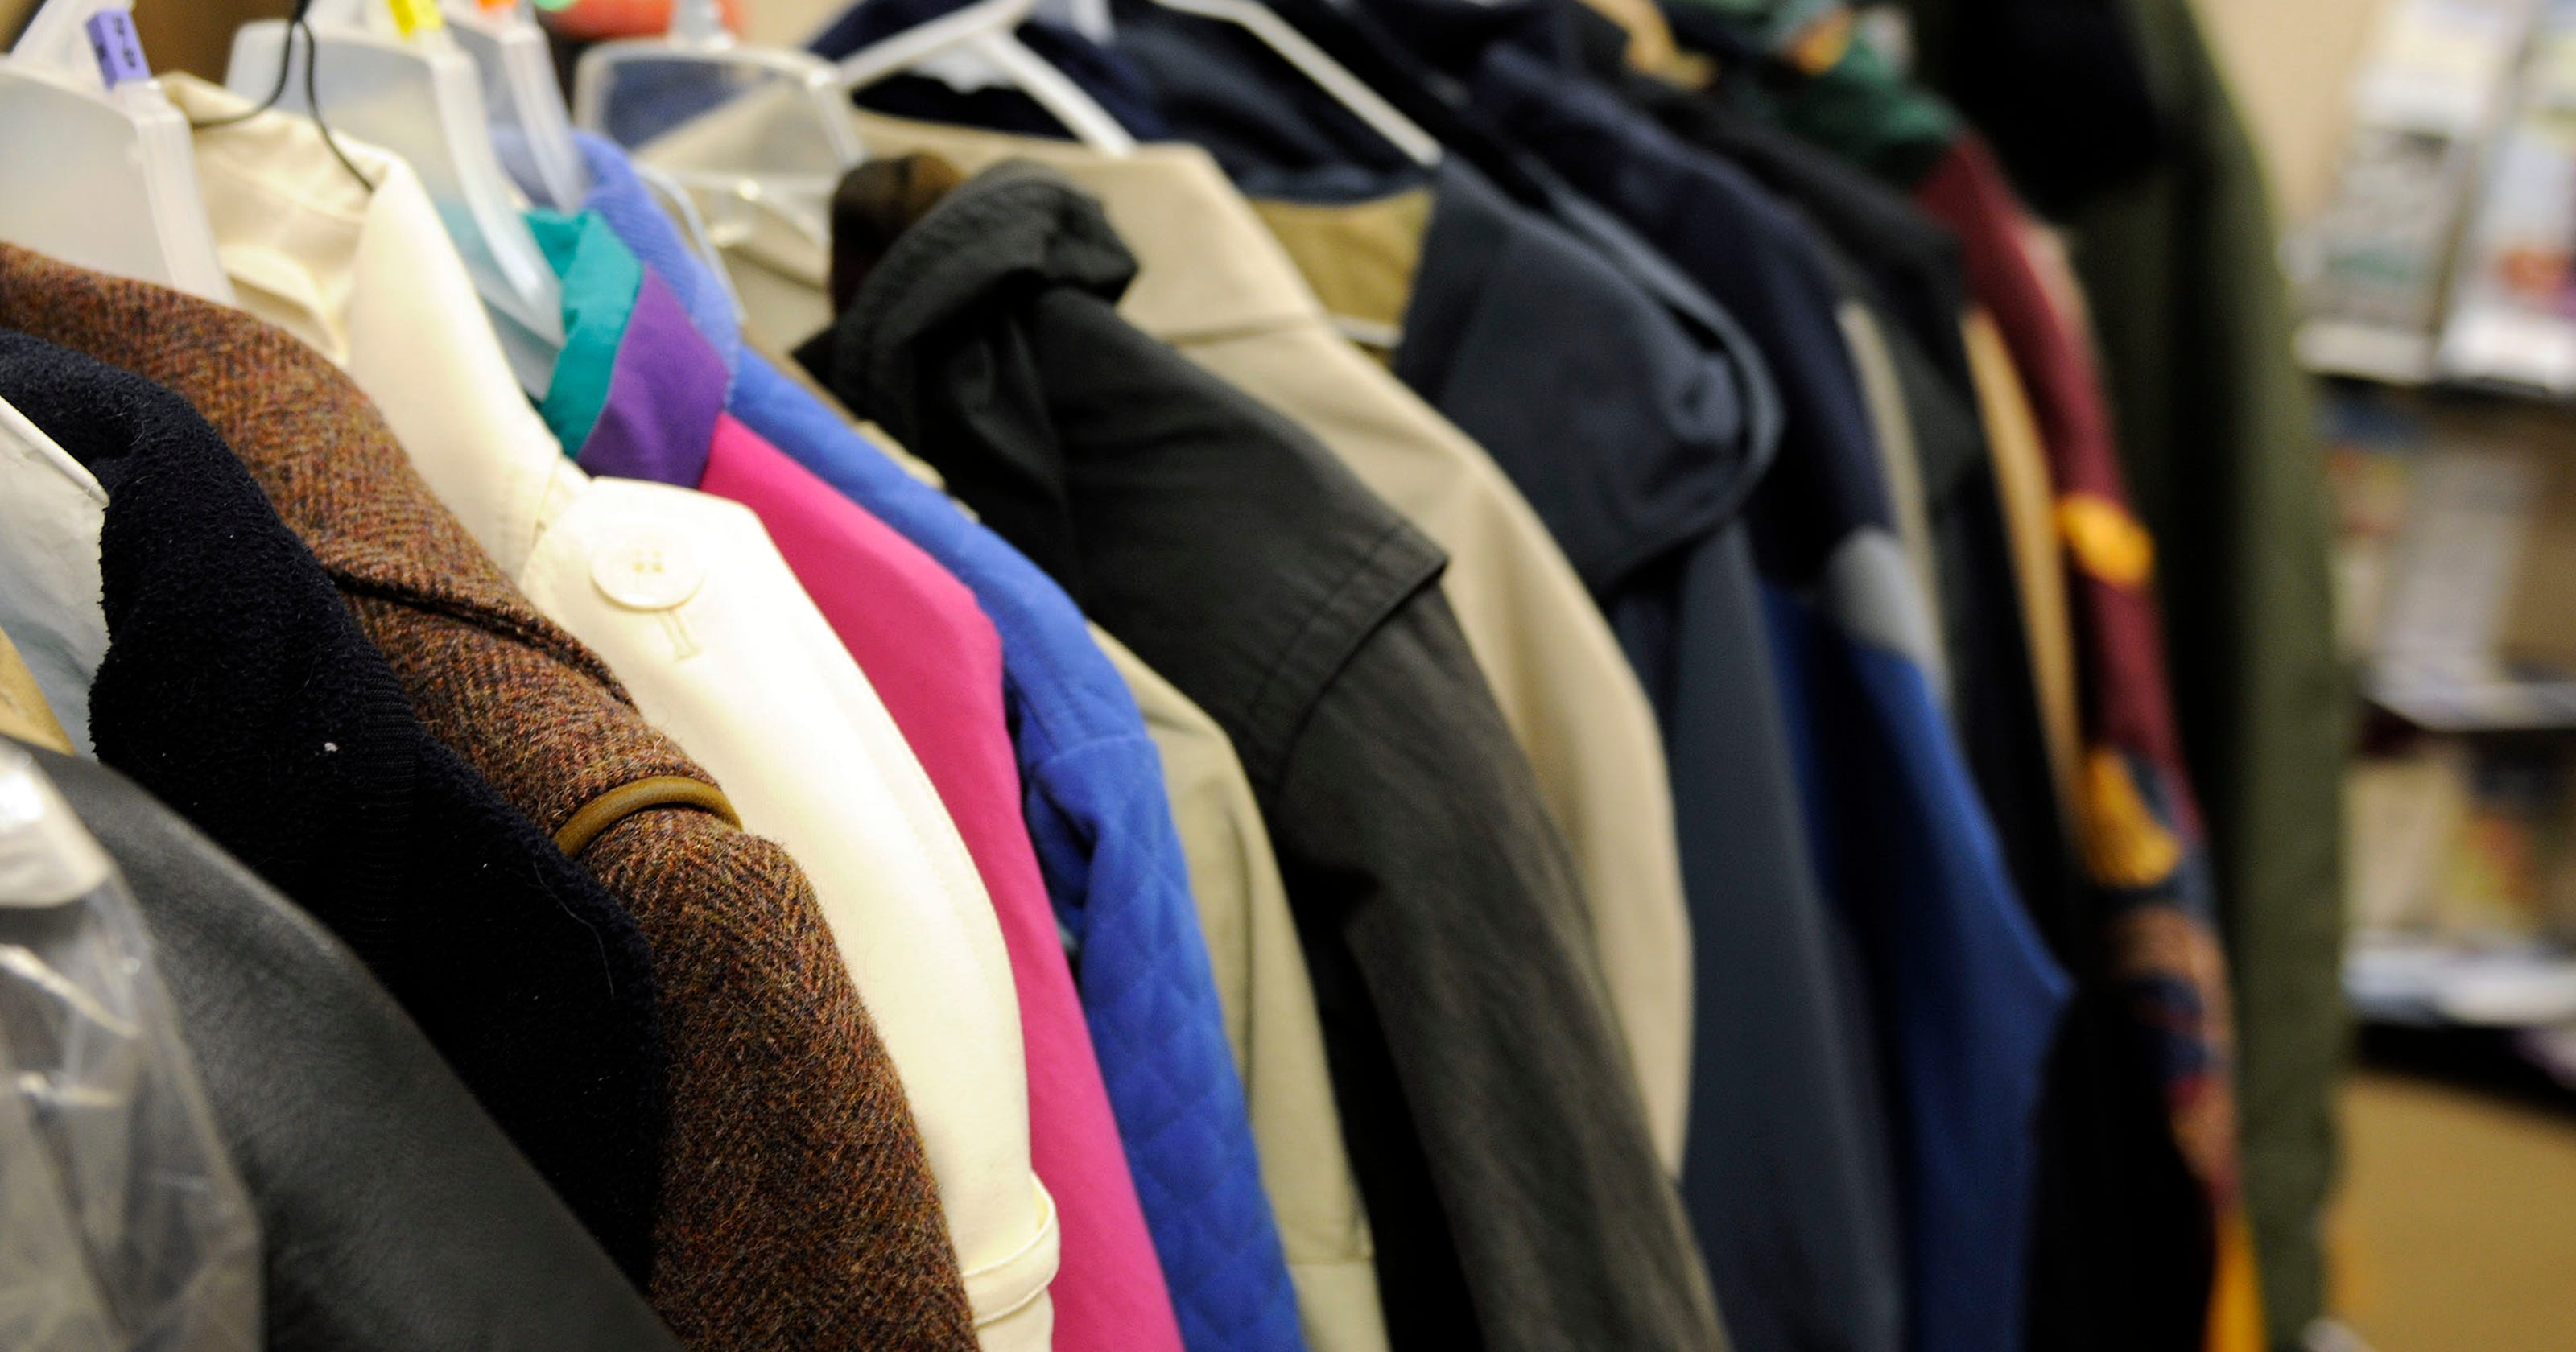 As cold approaches Salvation Army gears up 'Coats for